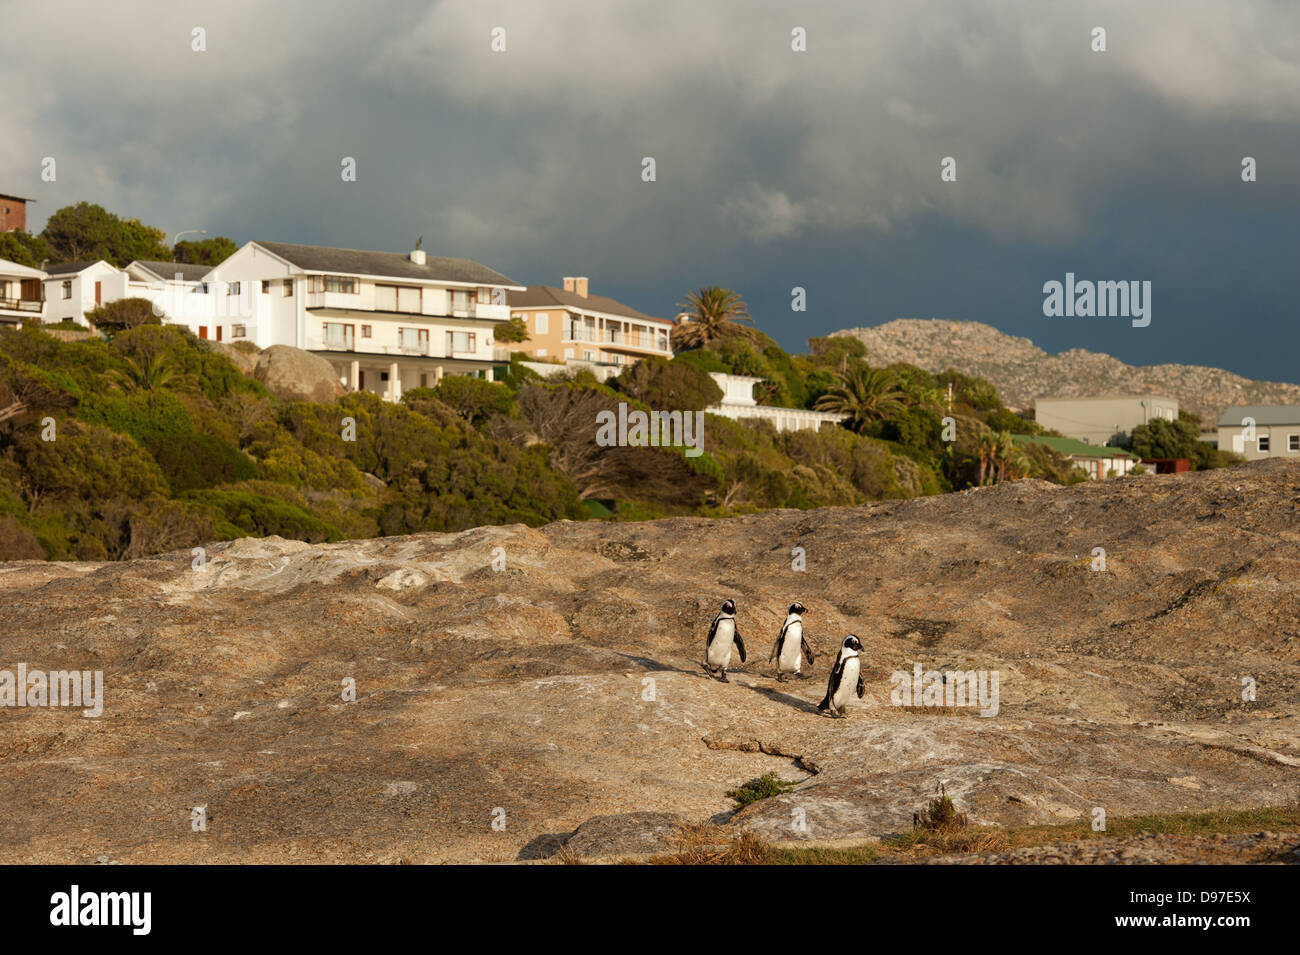 African penguins, Spheniscus demersus, Boulders Beach, Cape Peninsula, South Africa - Stock Image